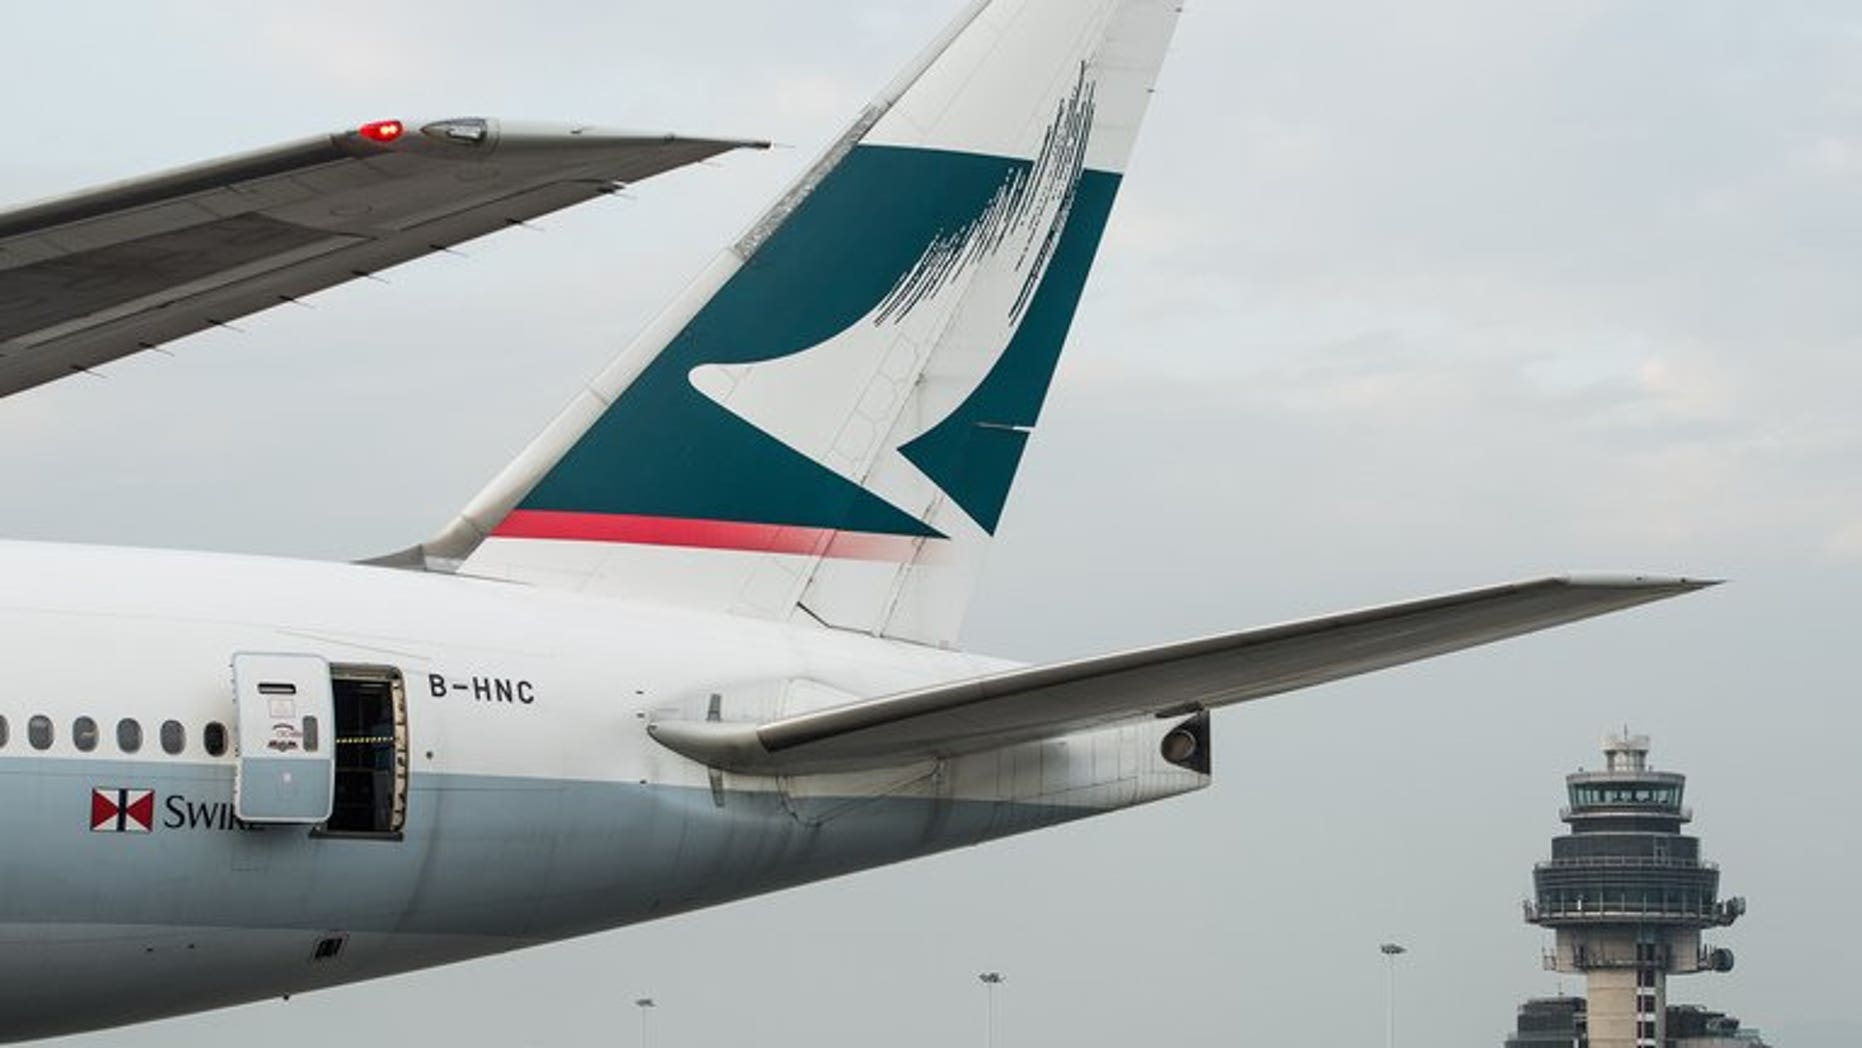 A Cathay Pacific plane on the tarmac of the international airport in Hong Kong, on December 7, 2012.